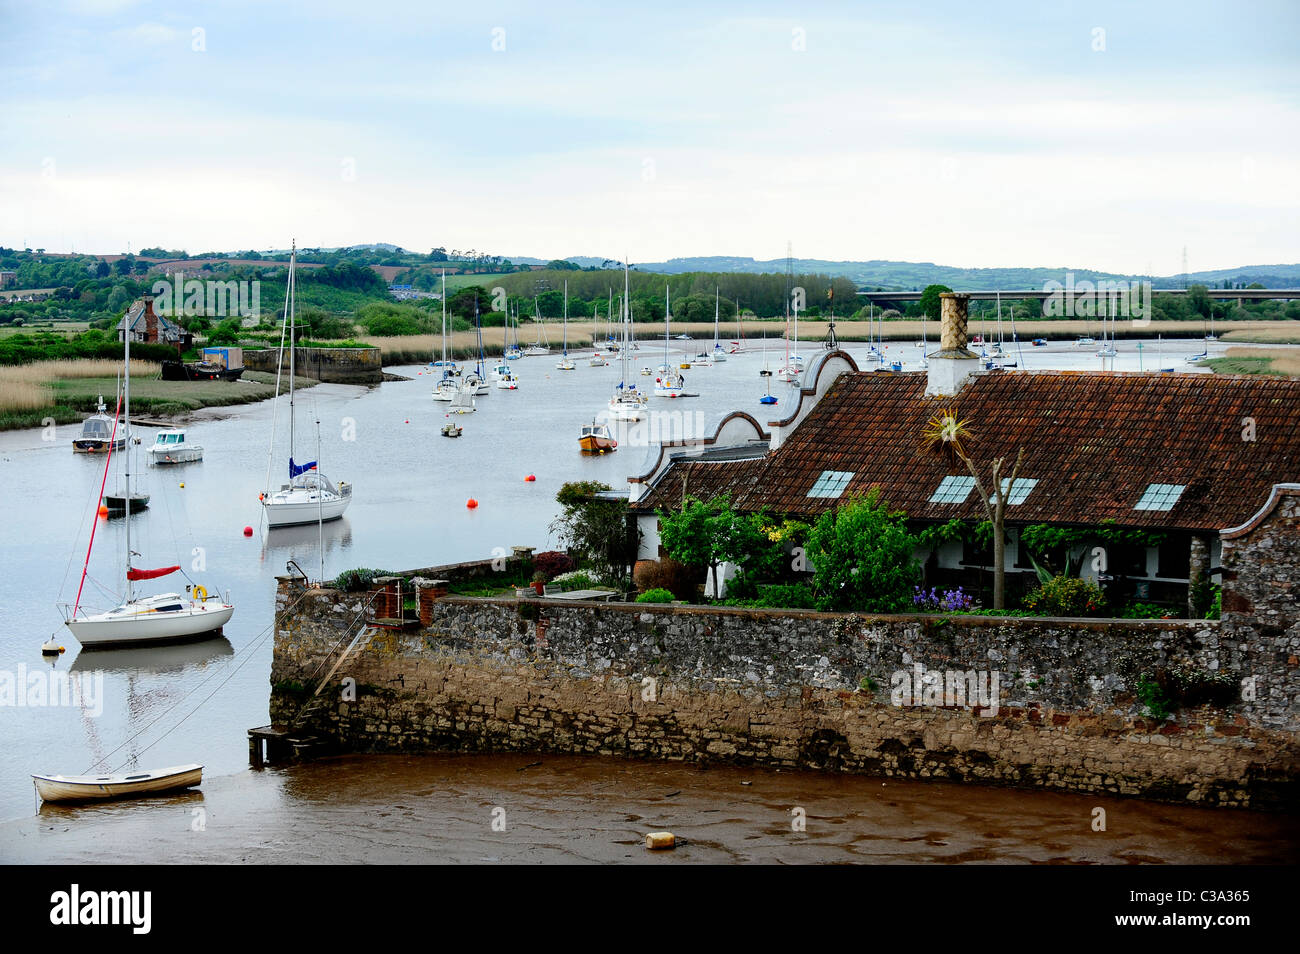 A view of some sailing boats at the River Exe - Topsham, Devon, UK - Stock Image